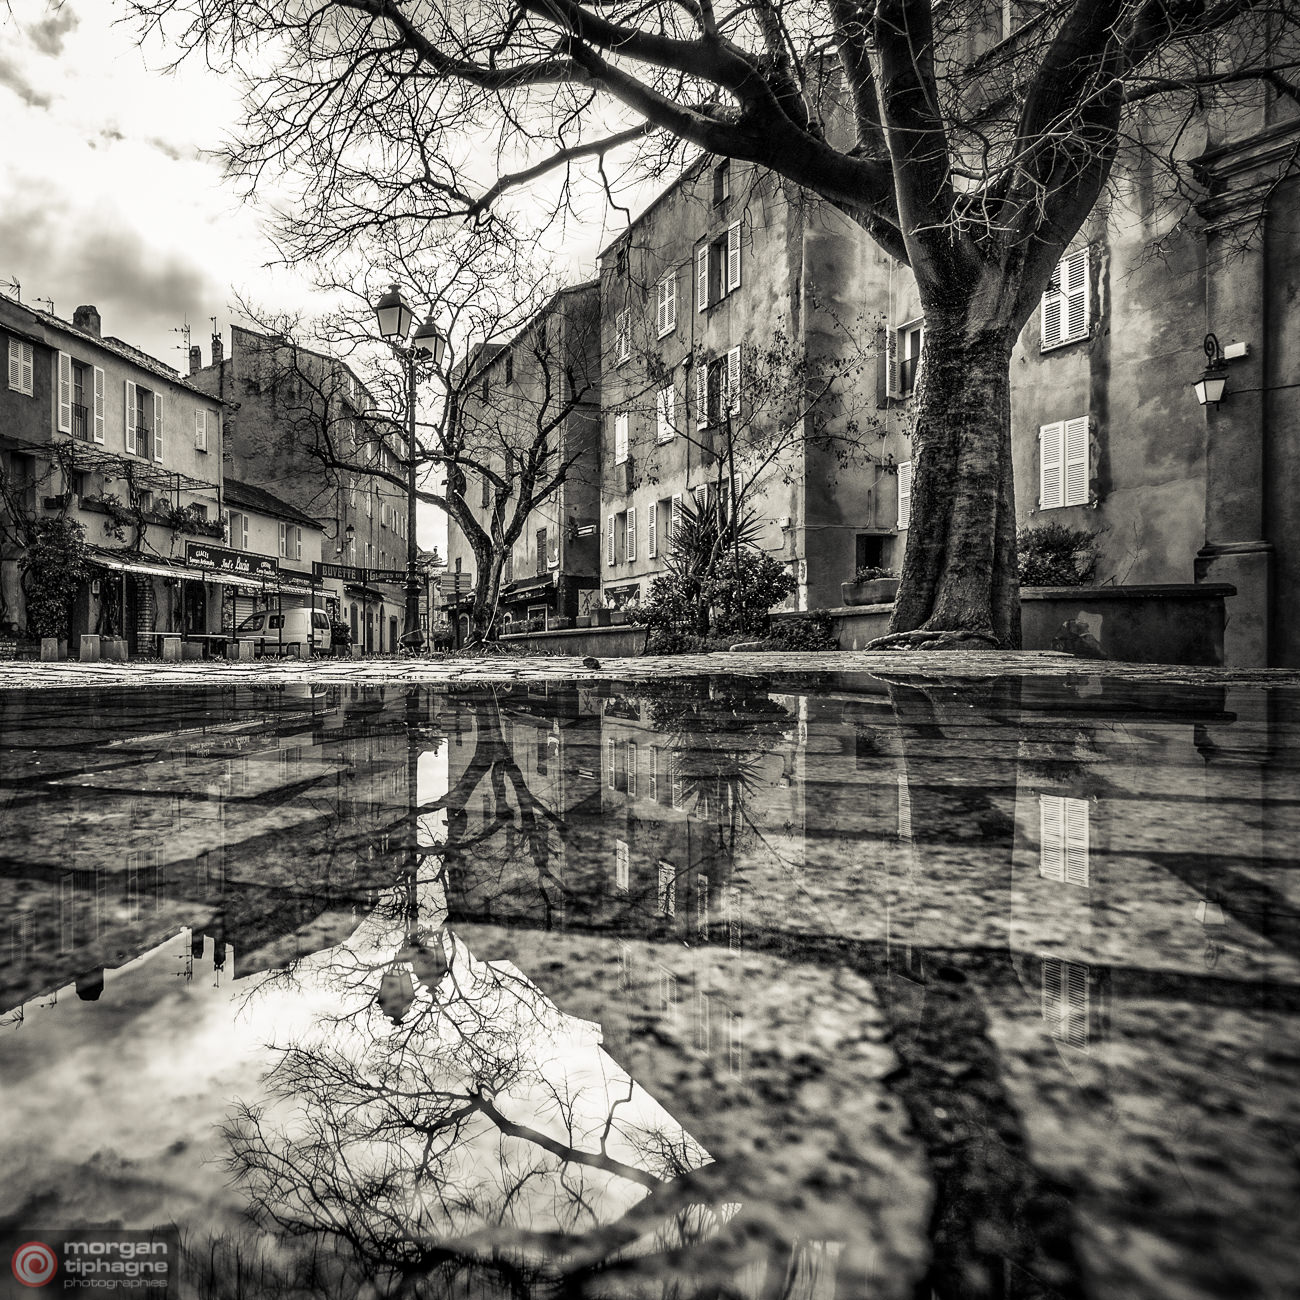 Mirror puddle